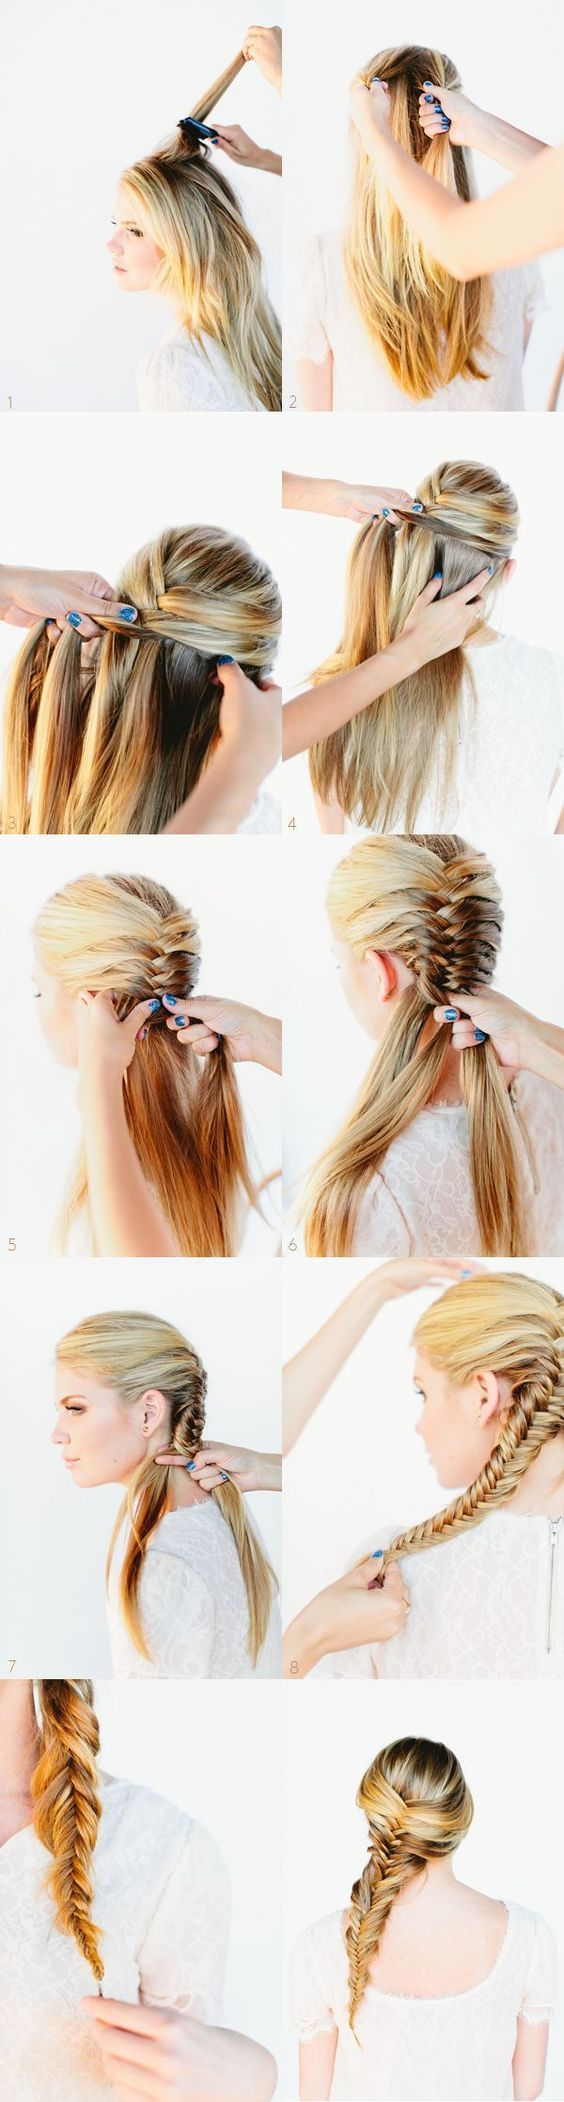 cute hairstyles for teenage girls top hair styles